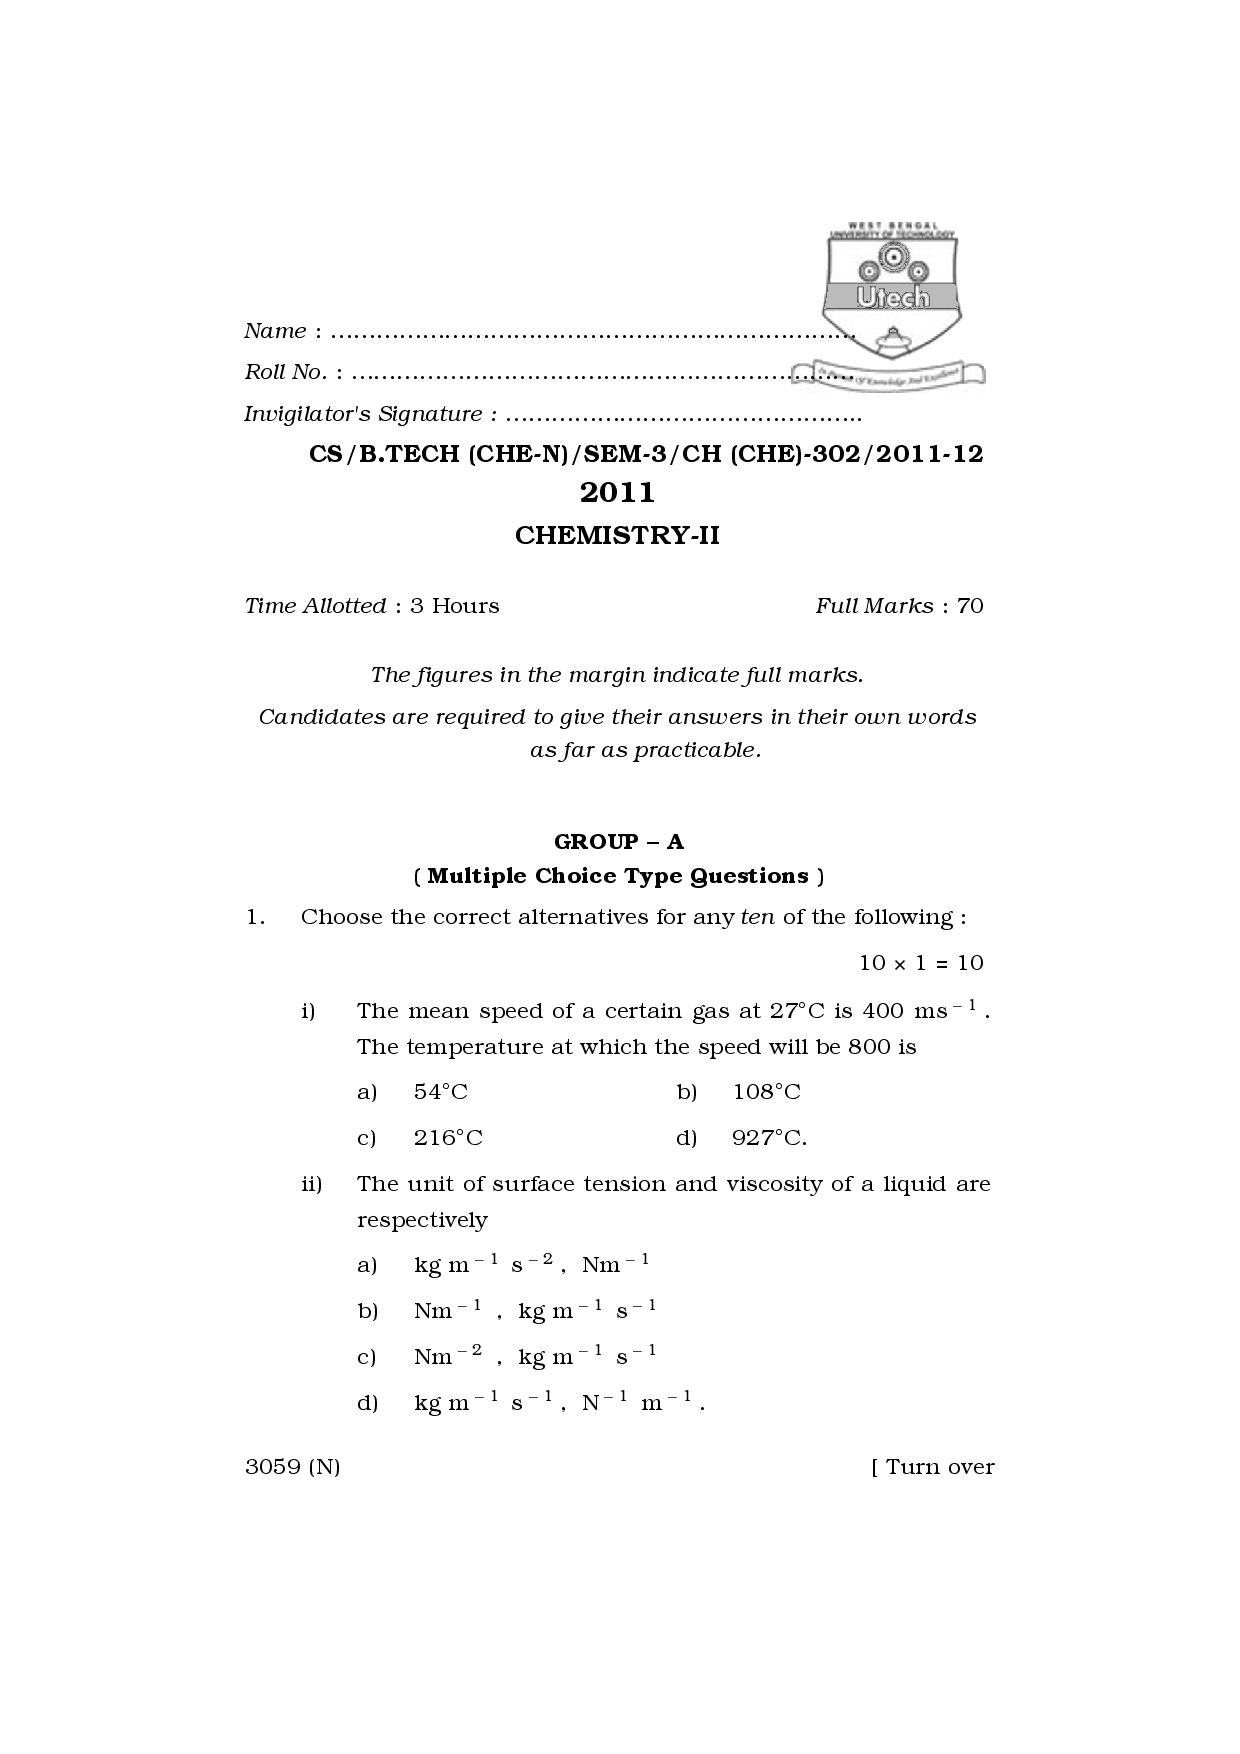 Download WBUT Chemical Engineering 3rd Semester Previous